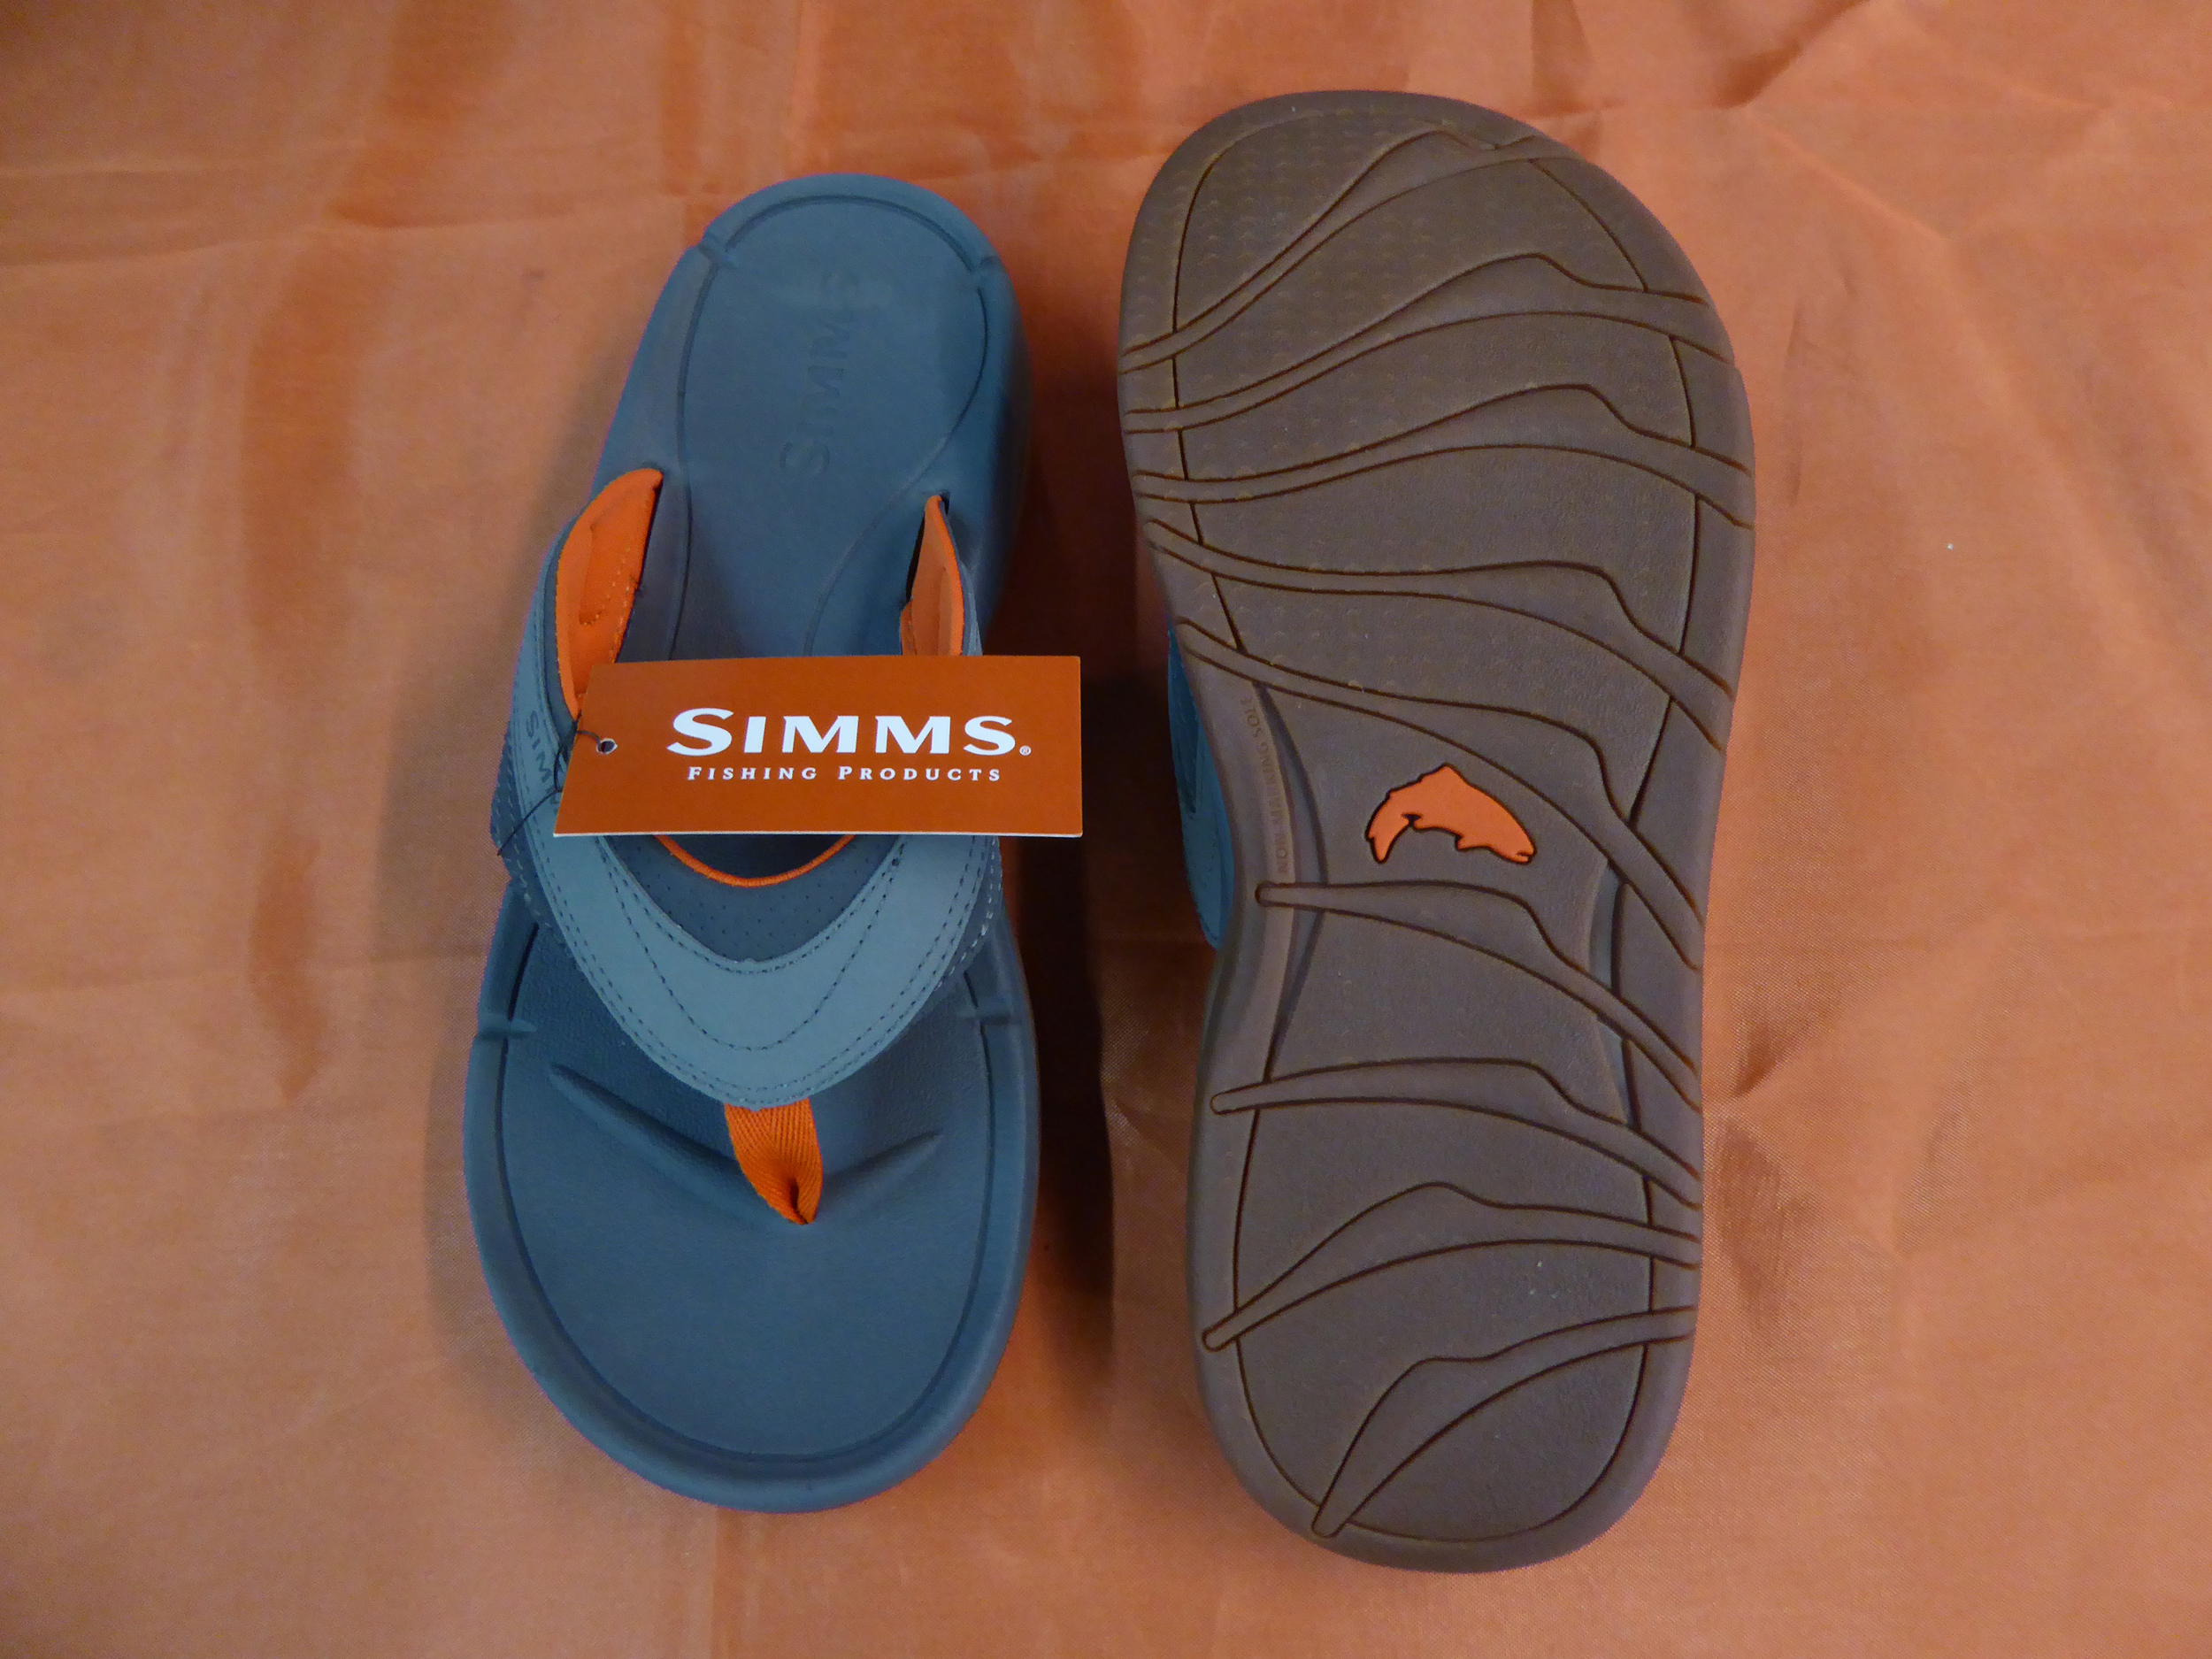 Simms Atoll Flip, synthetic nubuck/cotton toe webbing upper, sizes 5 – 14 whole sizes, D width, approximate pair weight (size 10): 15 ounces